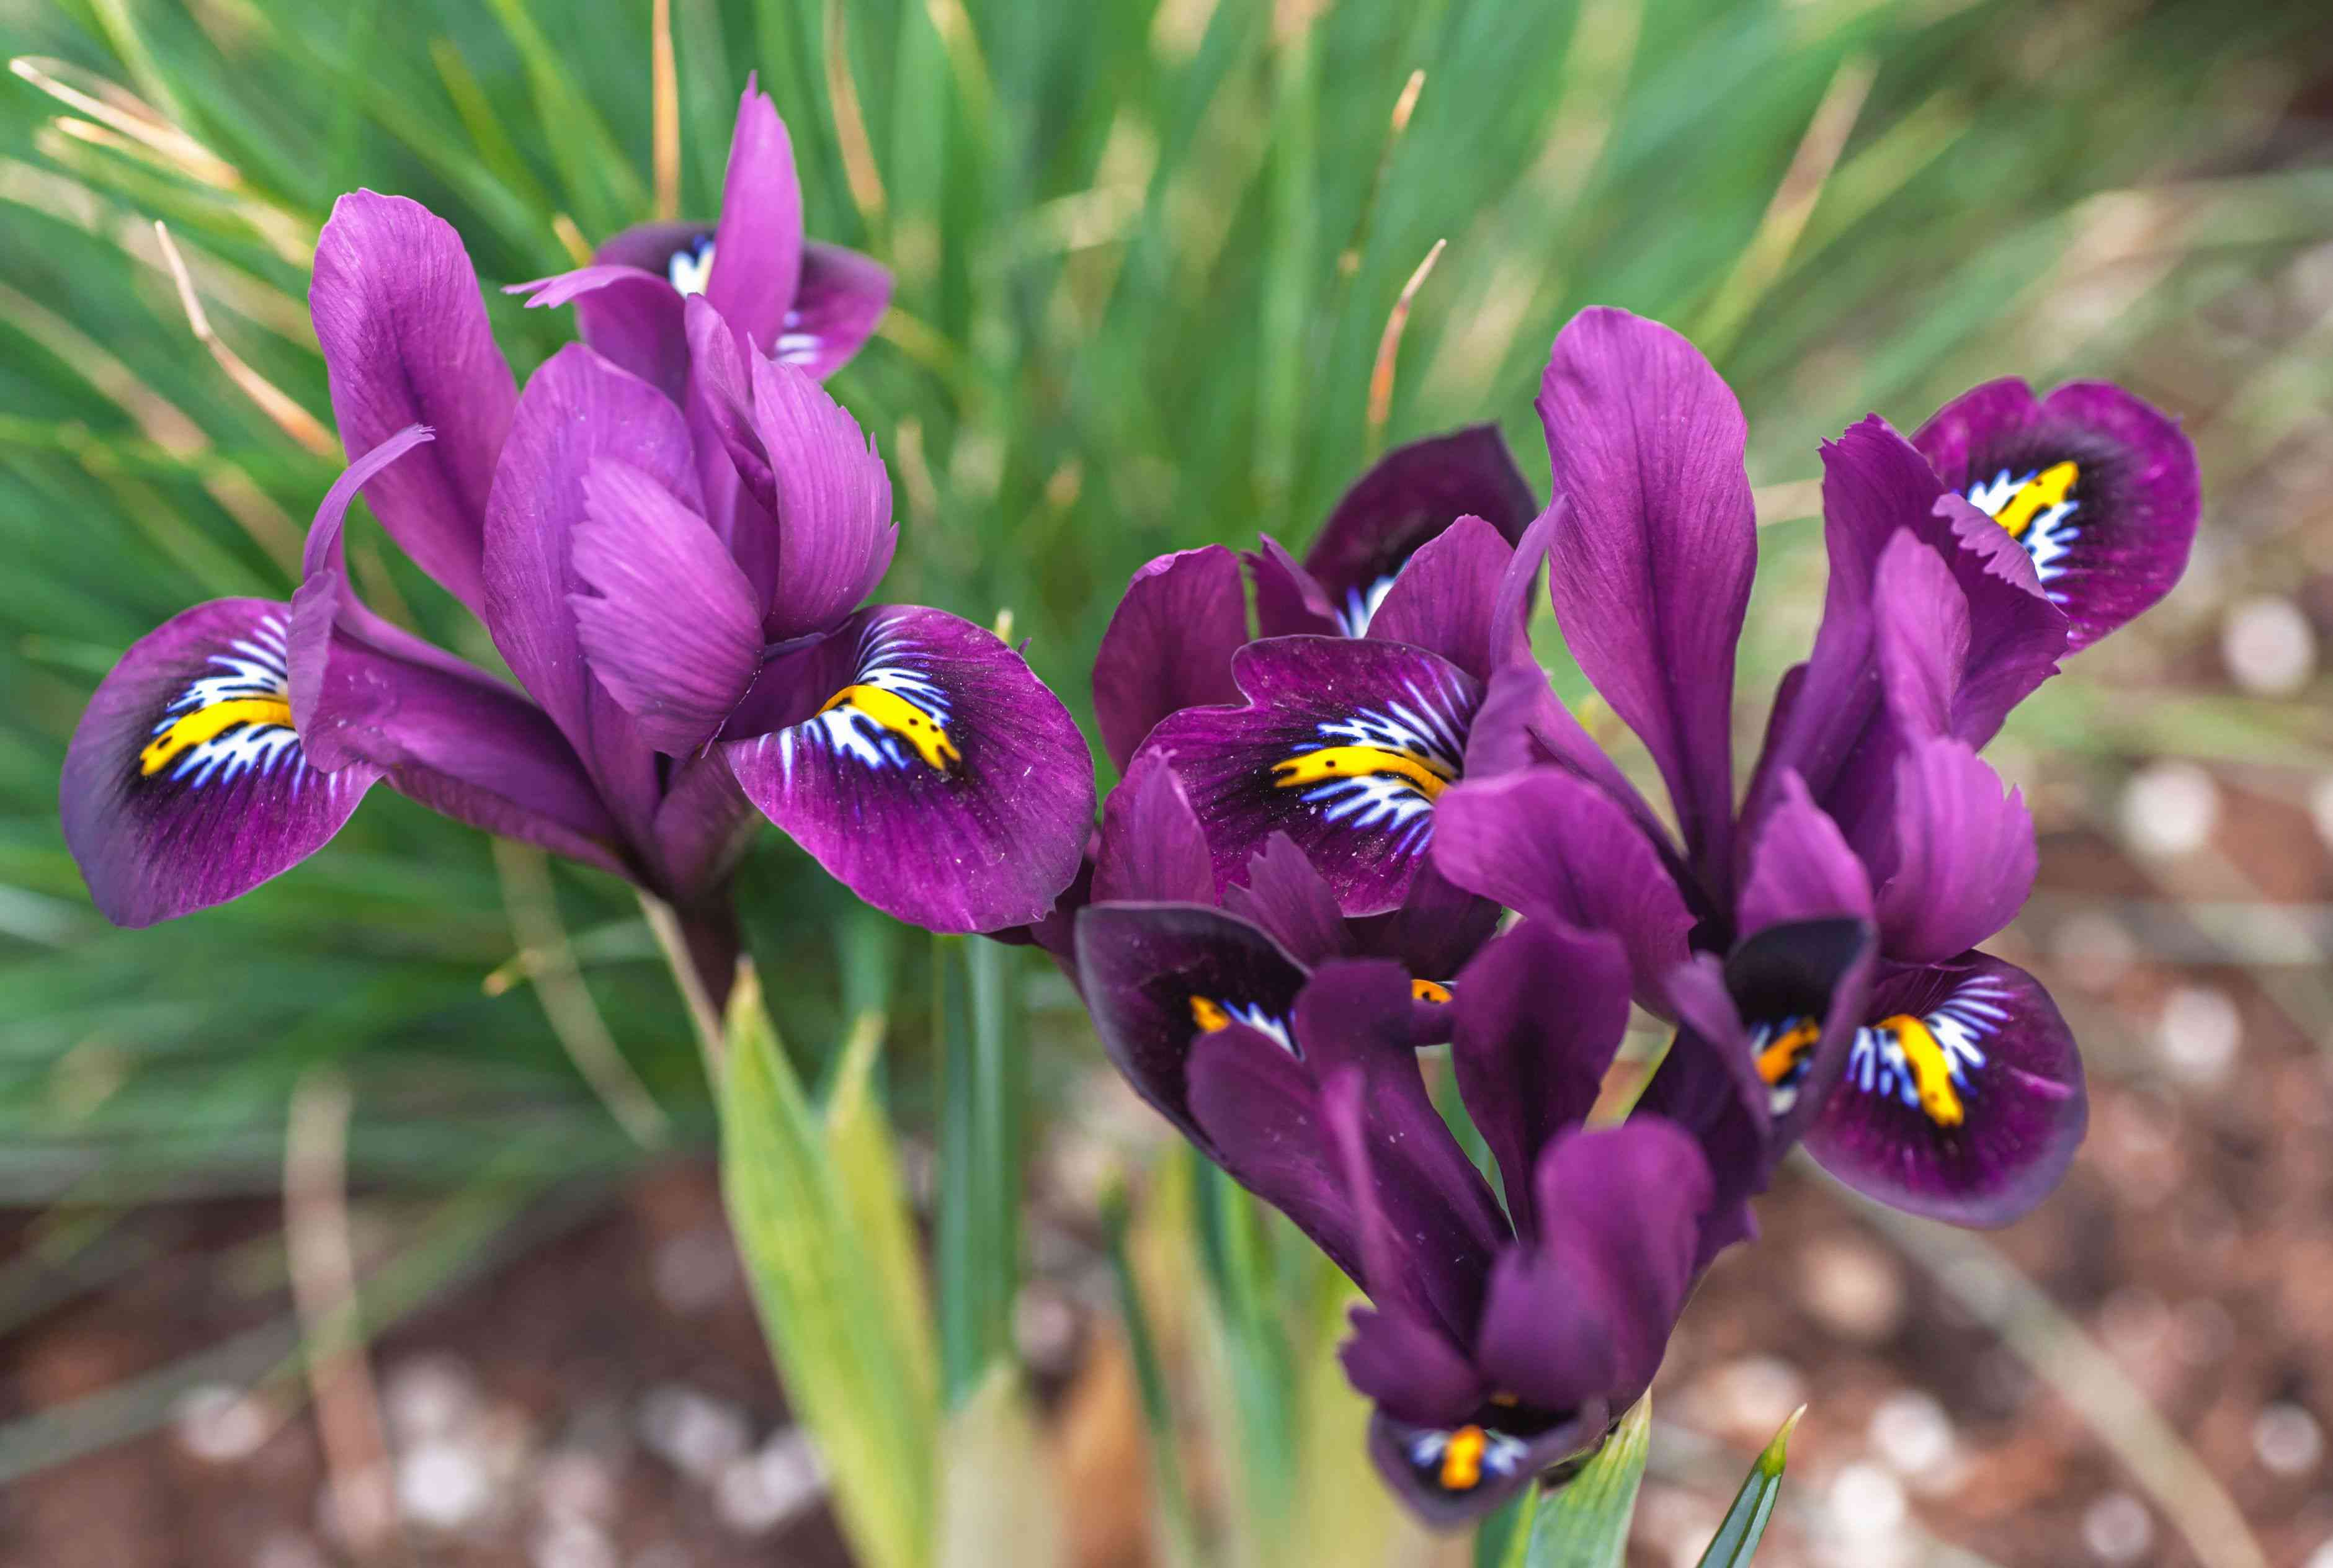 Iris plant with deep purple flowers with yellow, white and black inner petals